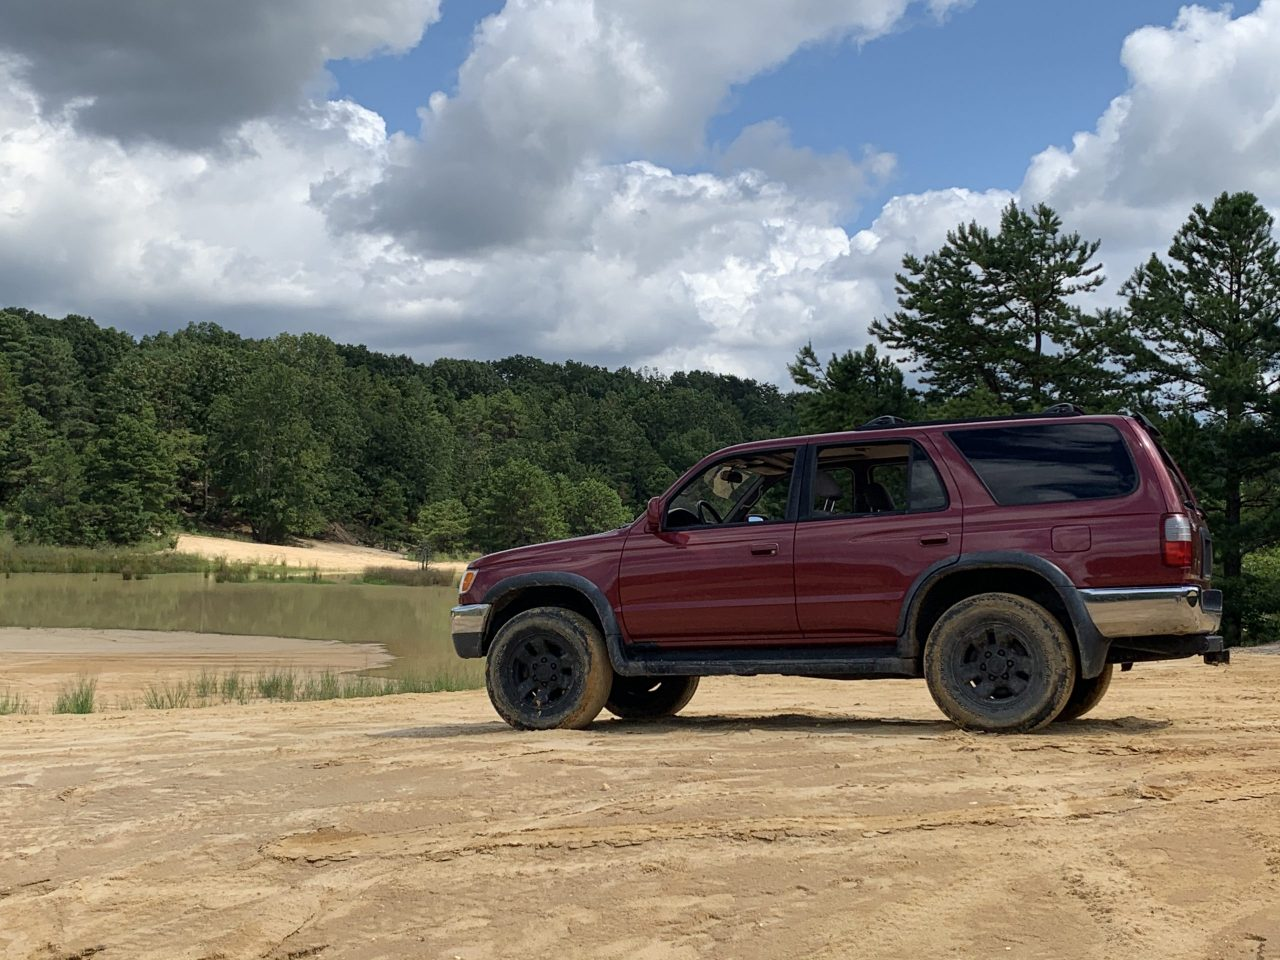 1997 Toyota 4runner Review At Rausch Creek Off Road Park Out Motorsports